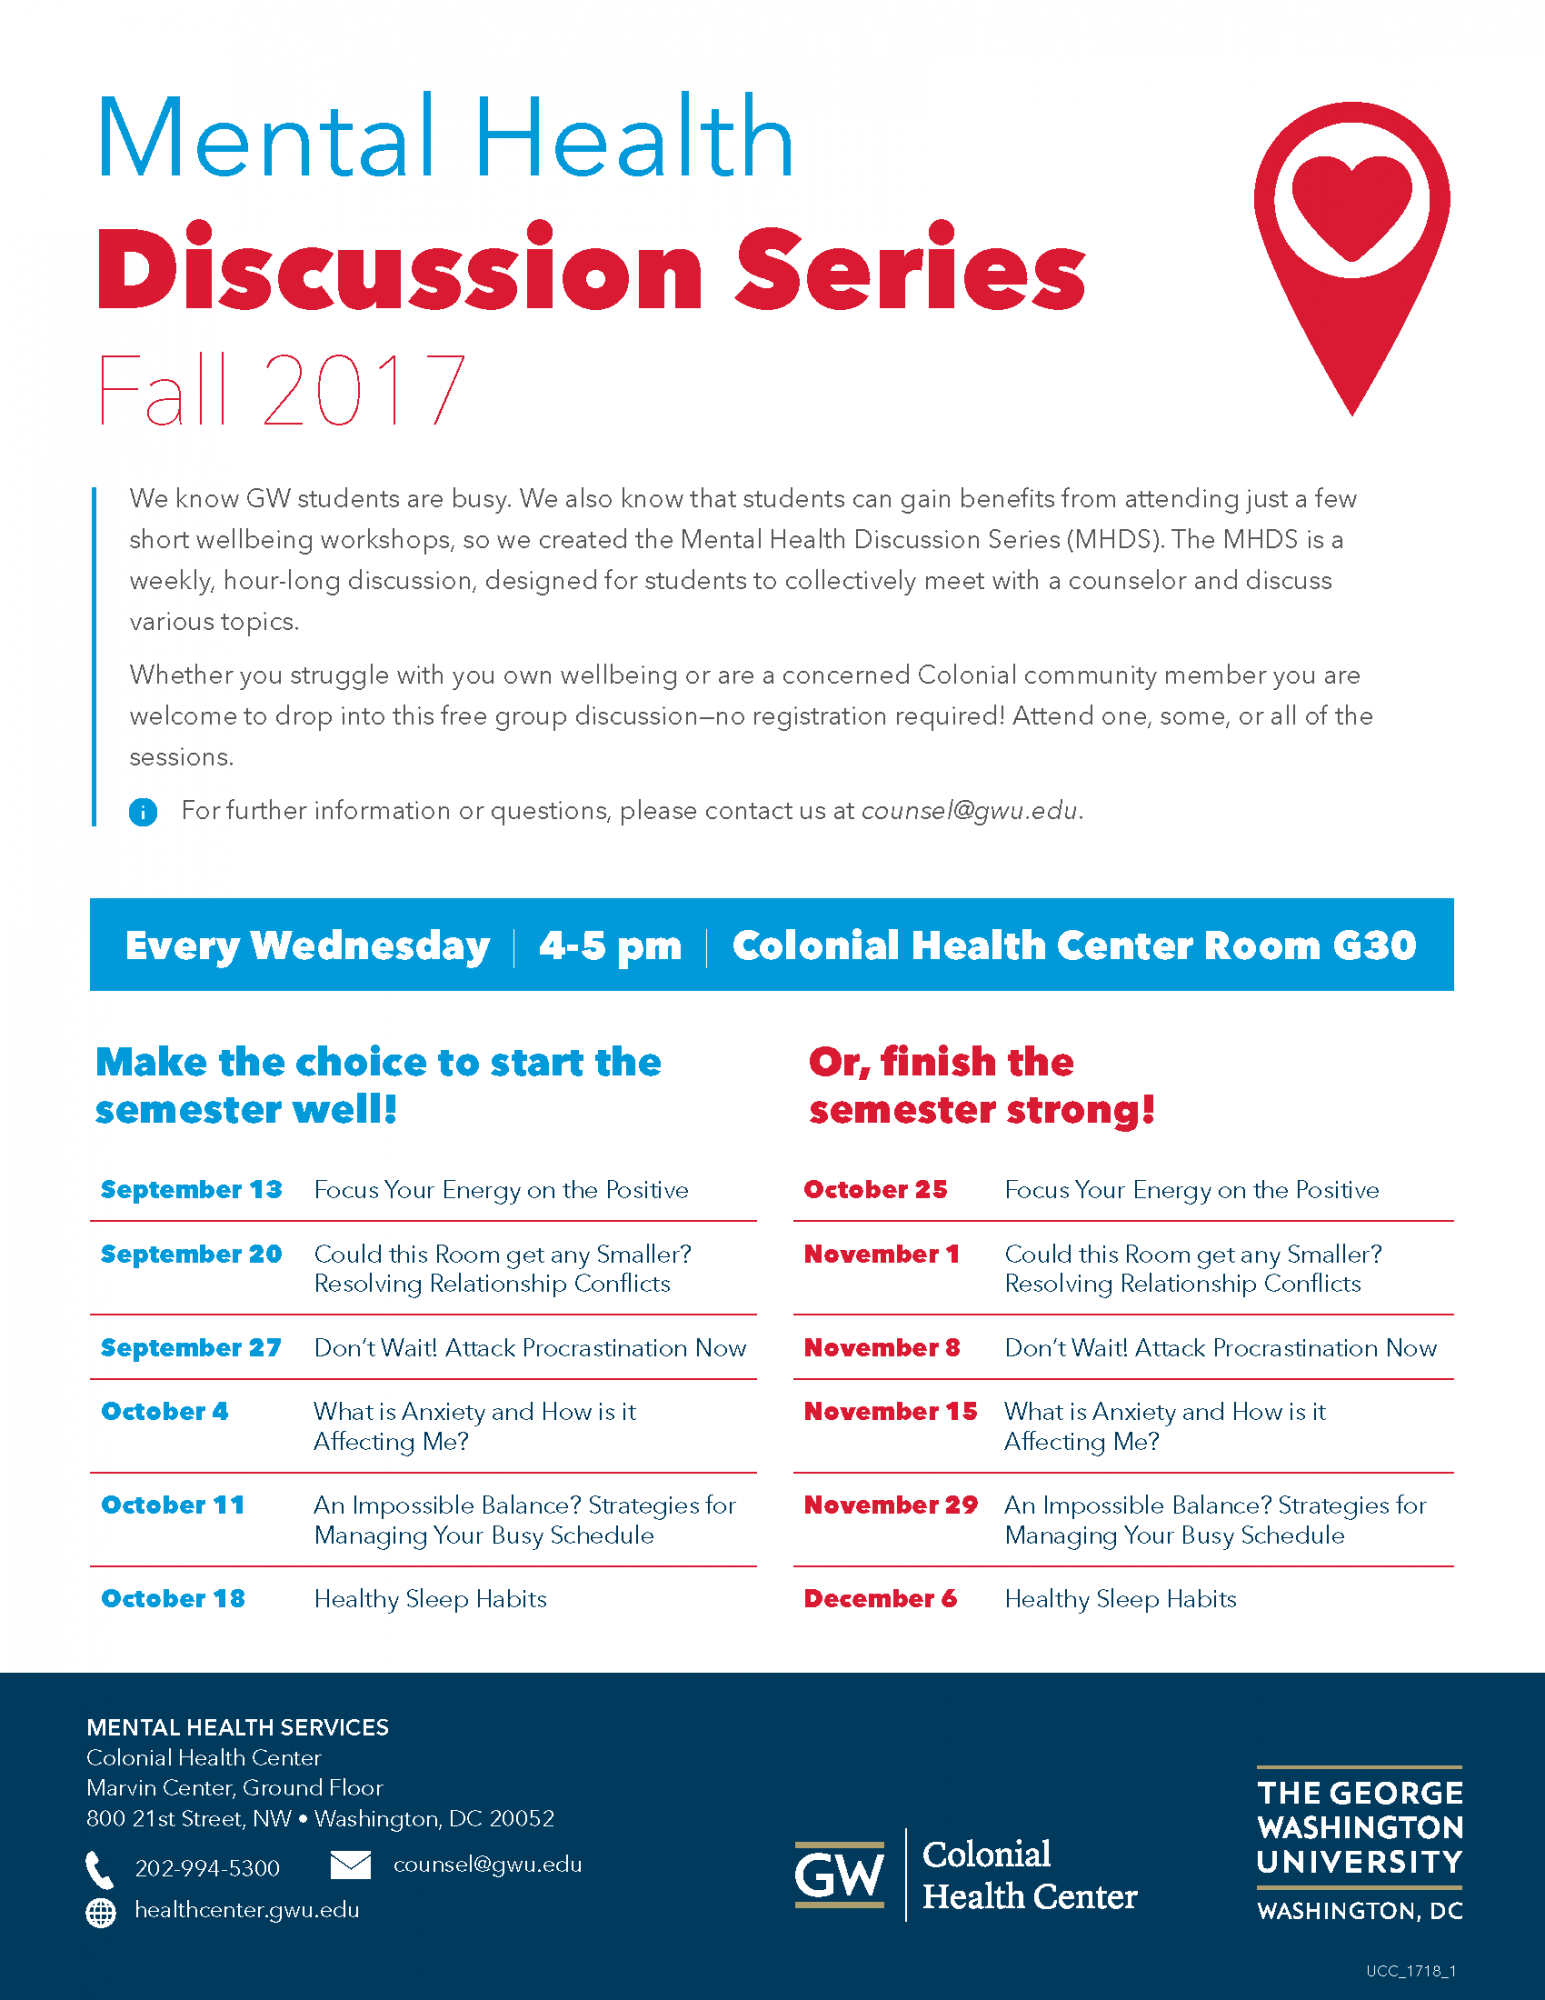 Mental Health Discussion Series Flyer